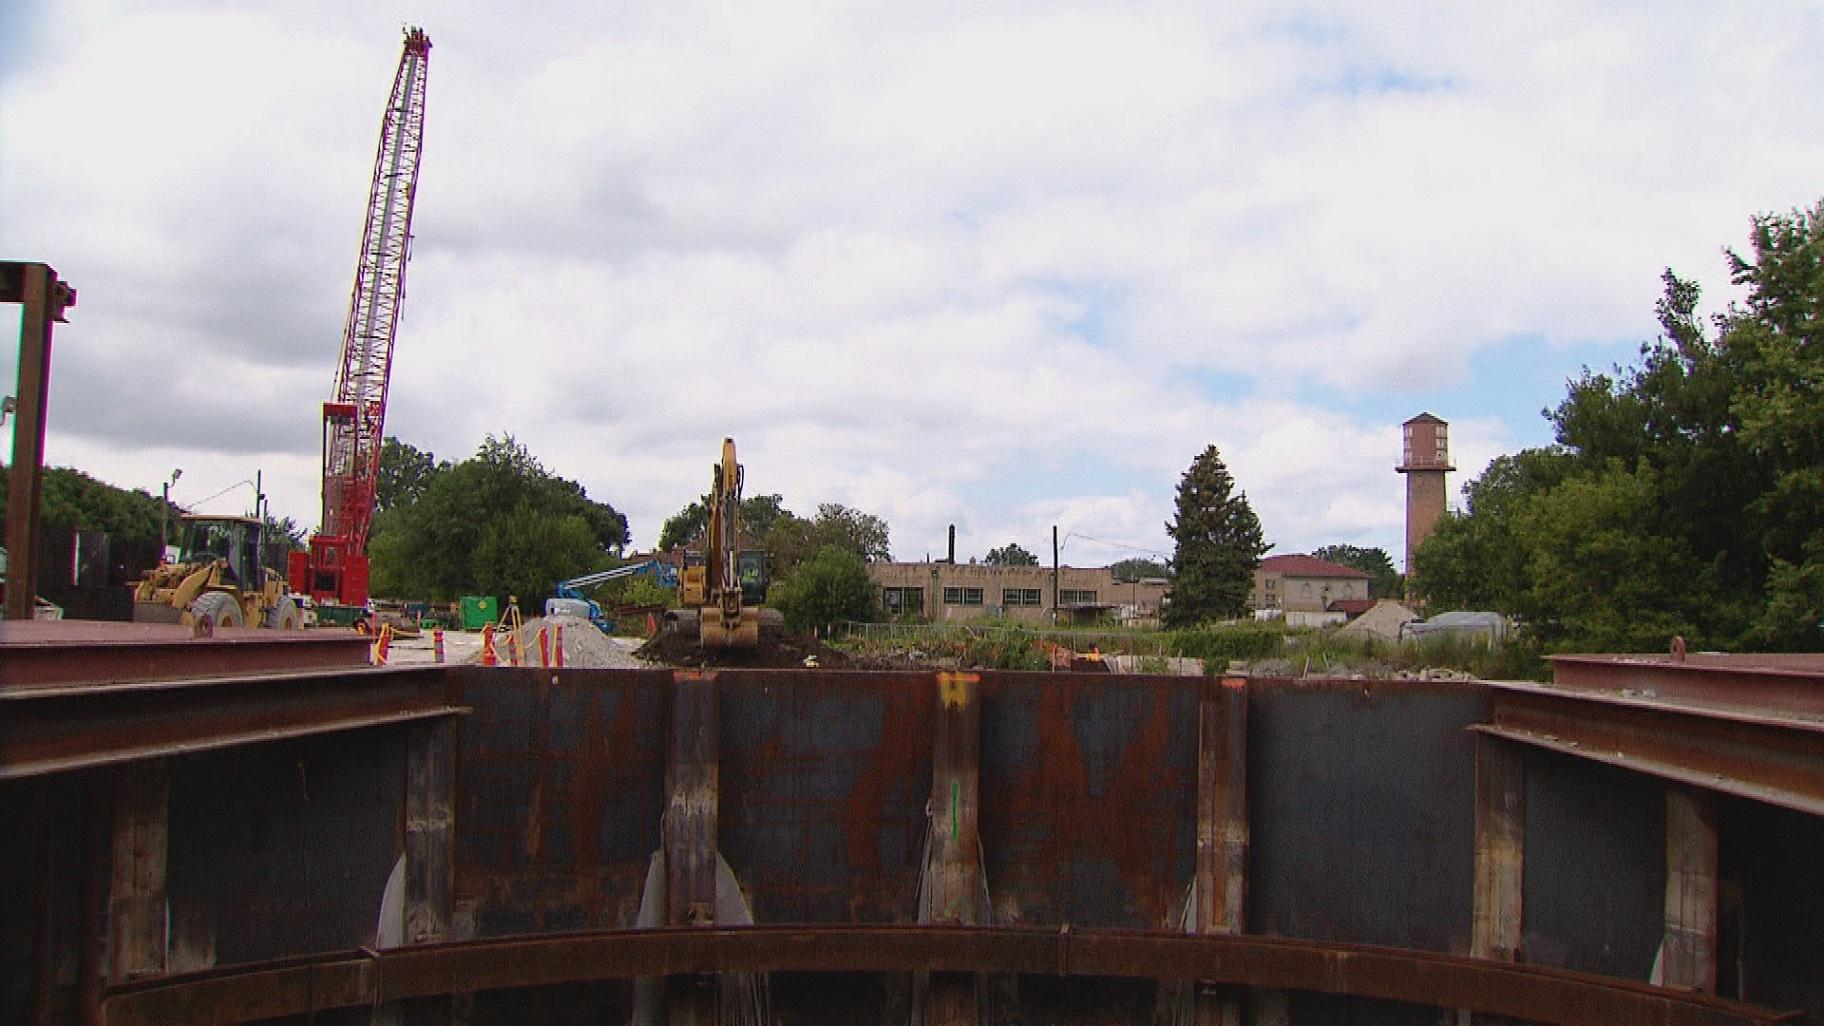 Construction on the Albany Park Stormwater Diversion Tunnel began in 2016 and was finished last year.